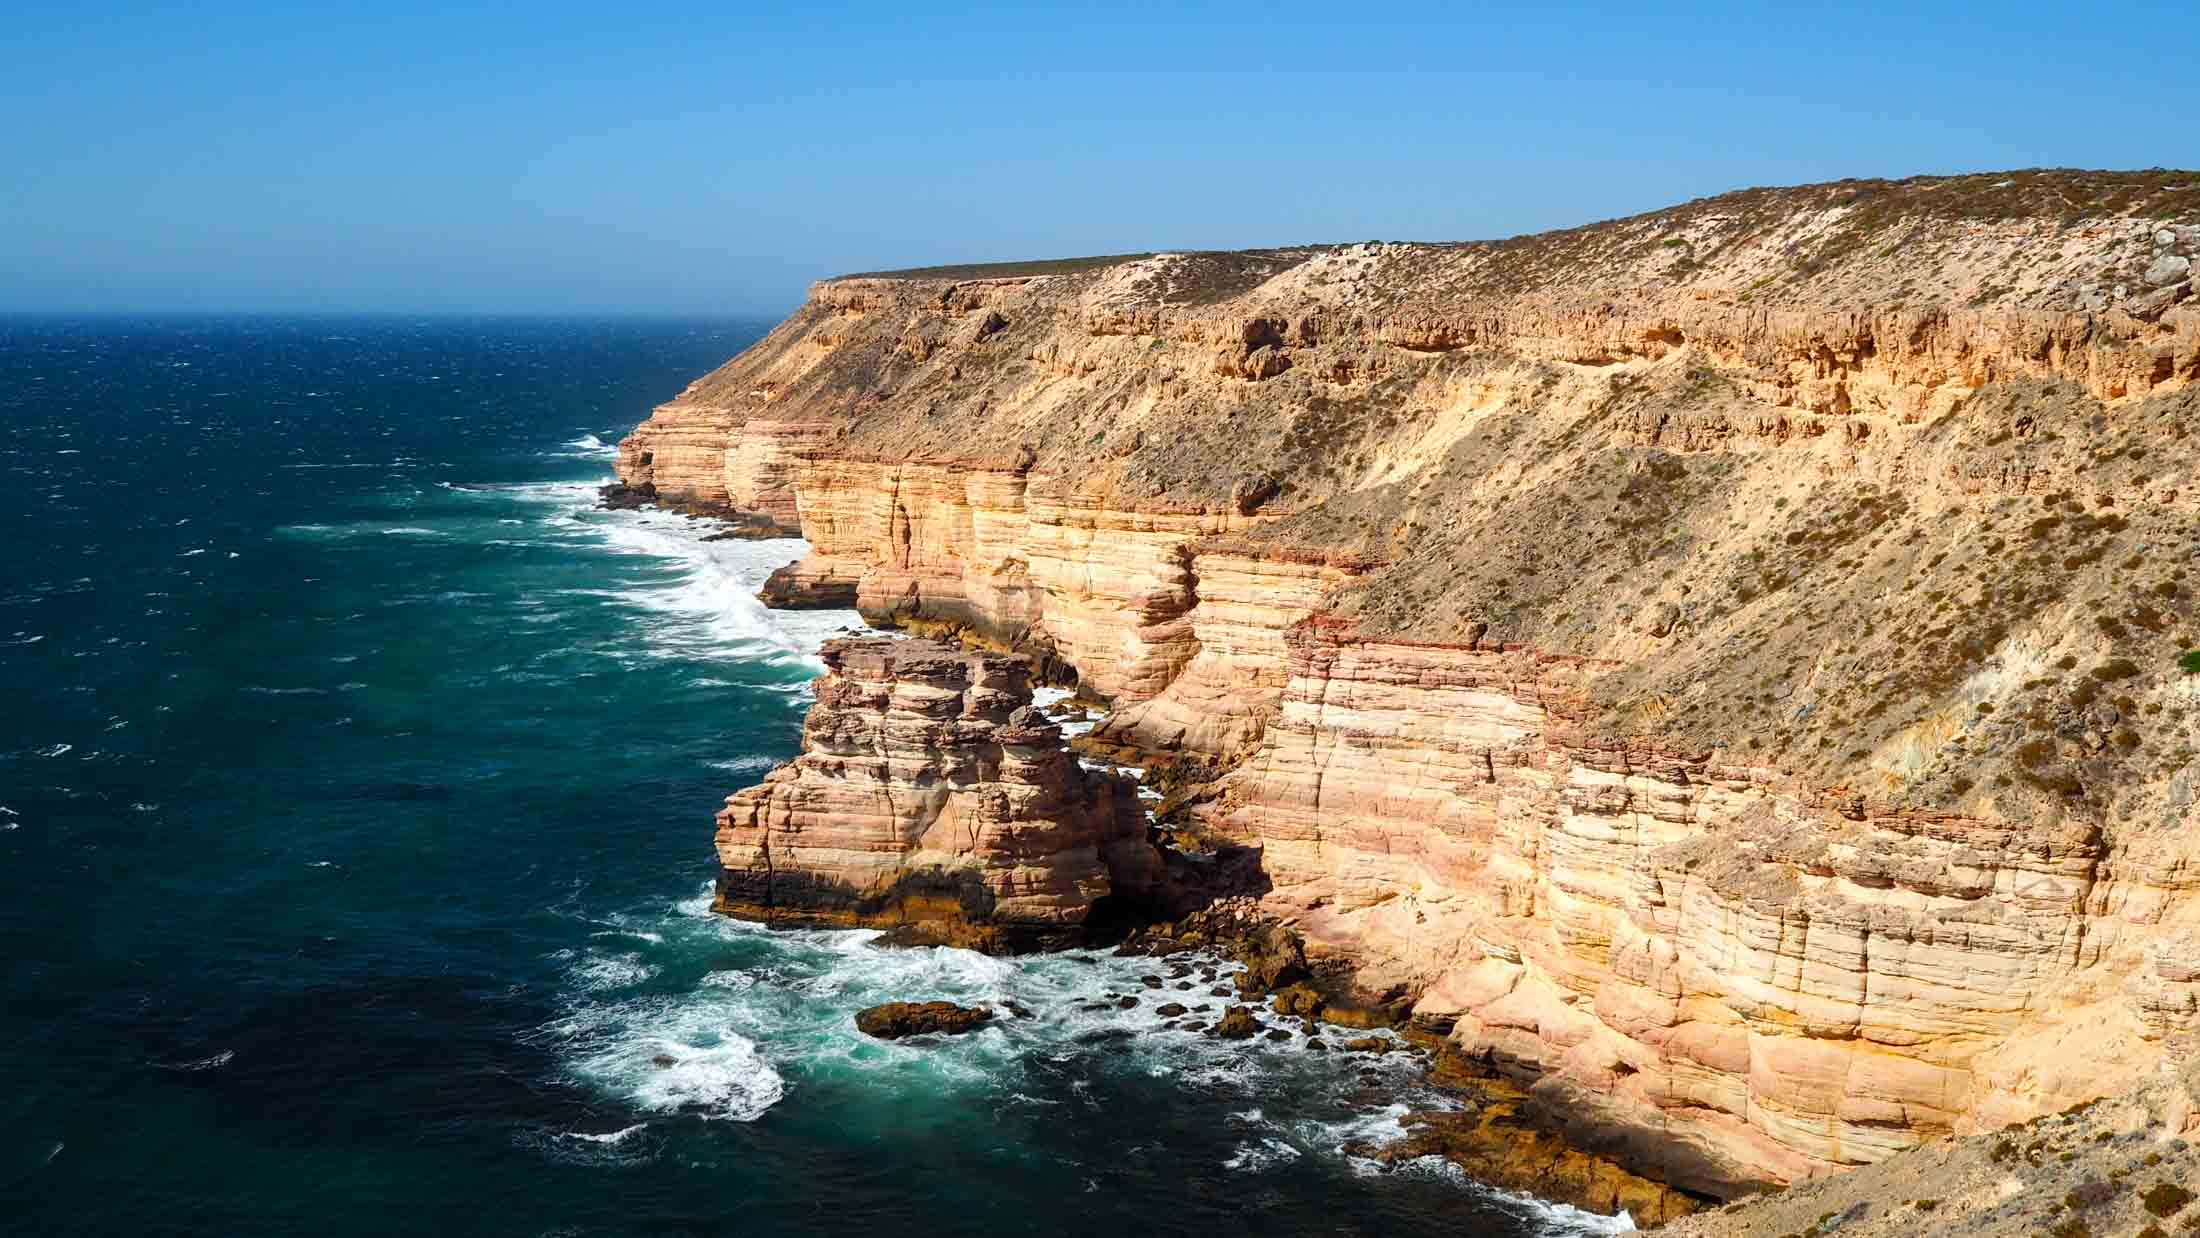 Coastal cliffs south of Kalbarri